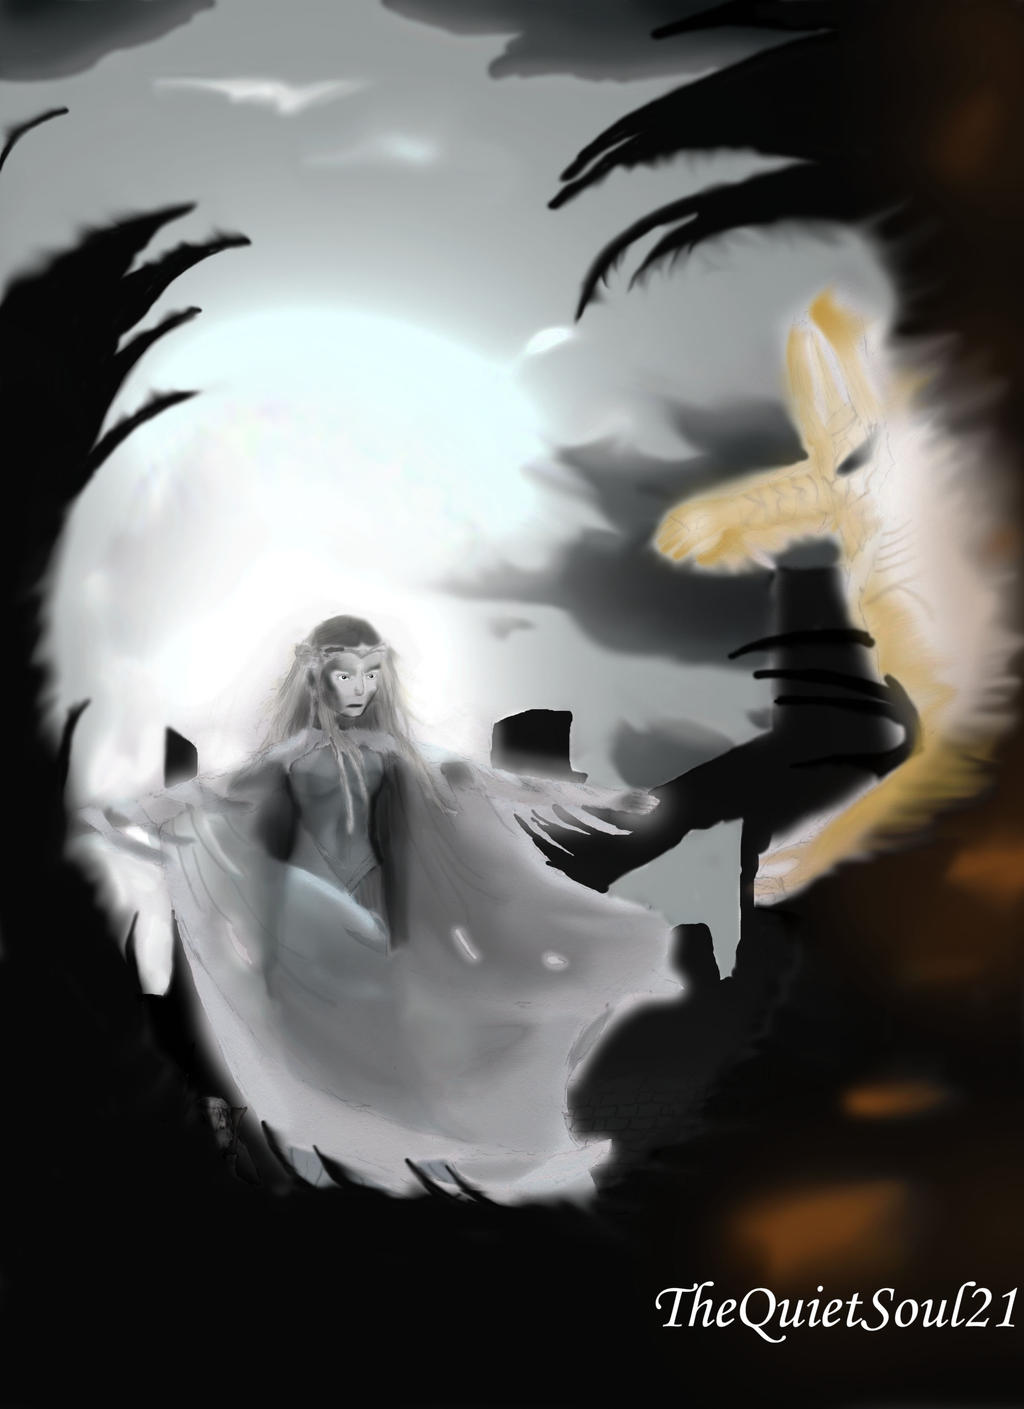 galadriel vs sauron by thequietsoul21 on deviantart